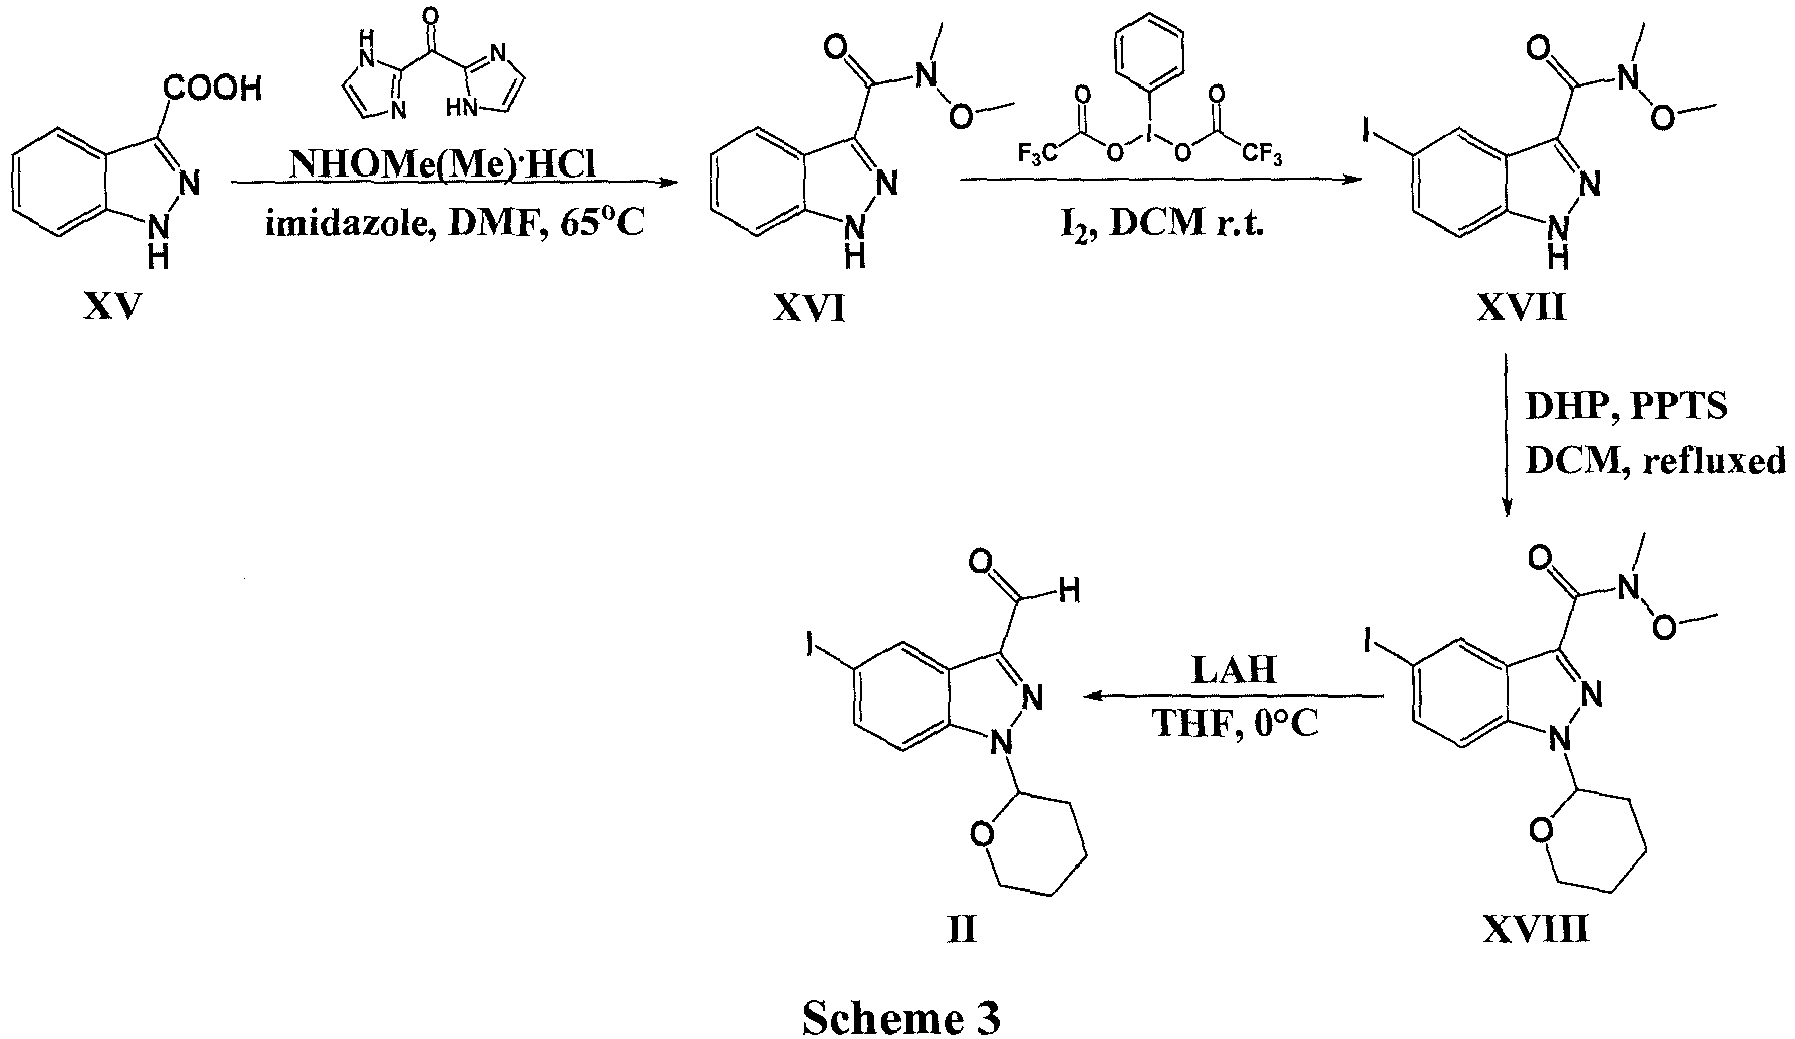 EP2760285B1 - Indazole inhibitors of the wnt signal pathway